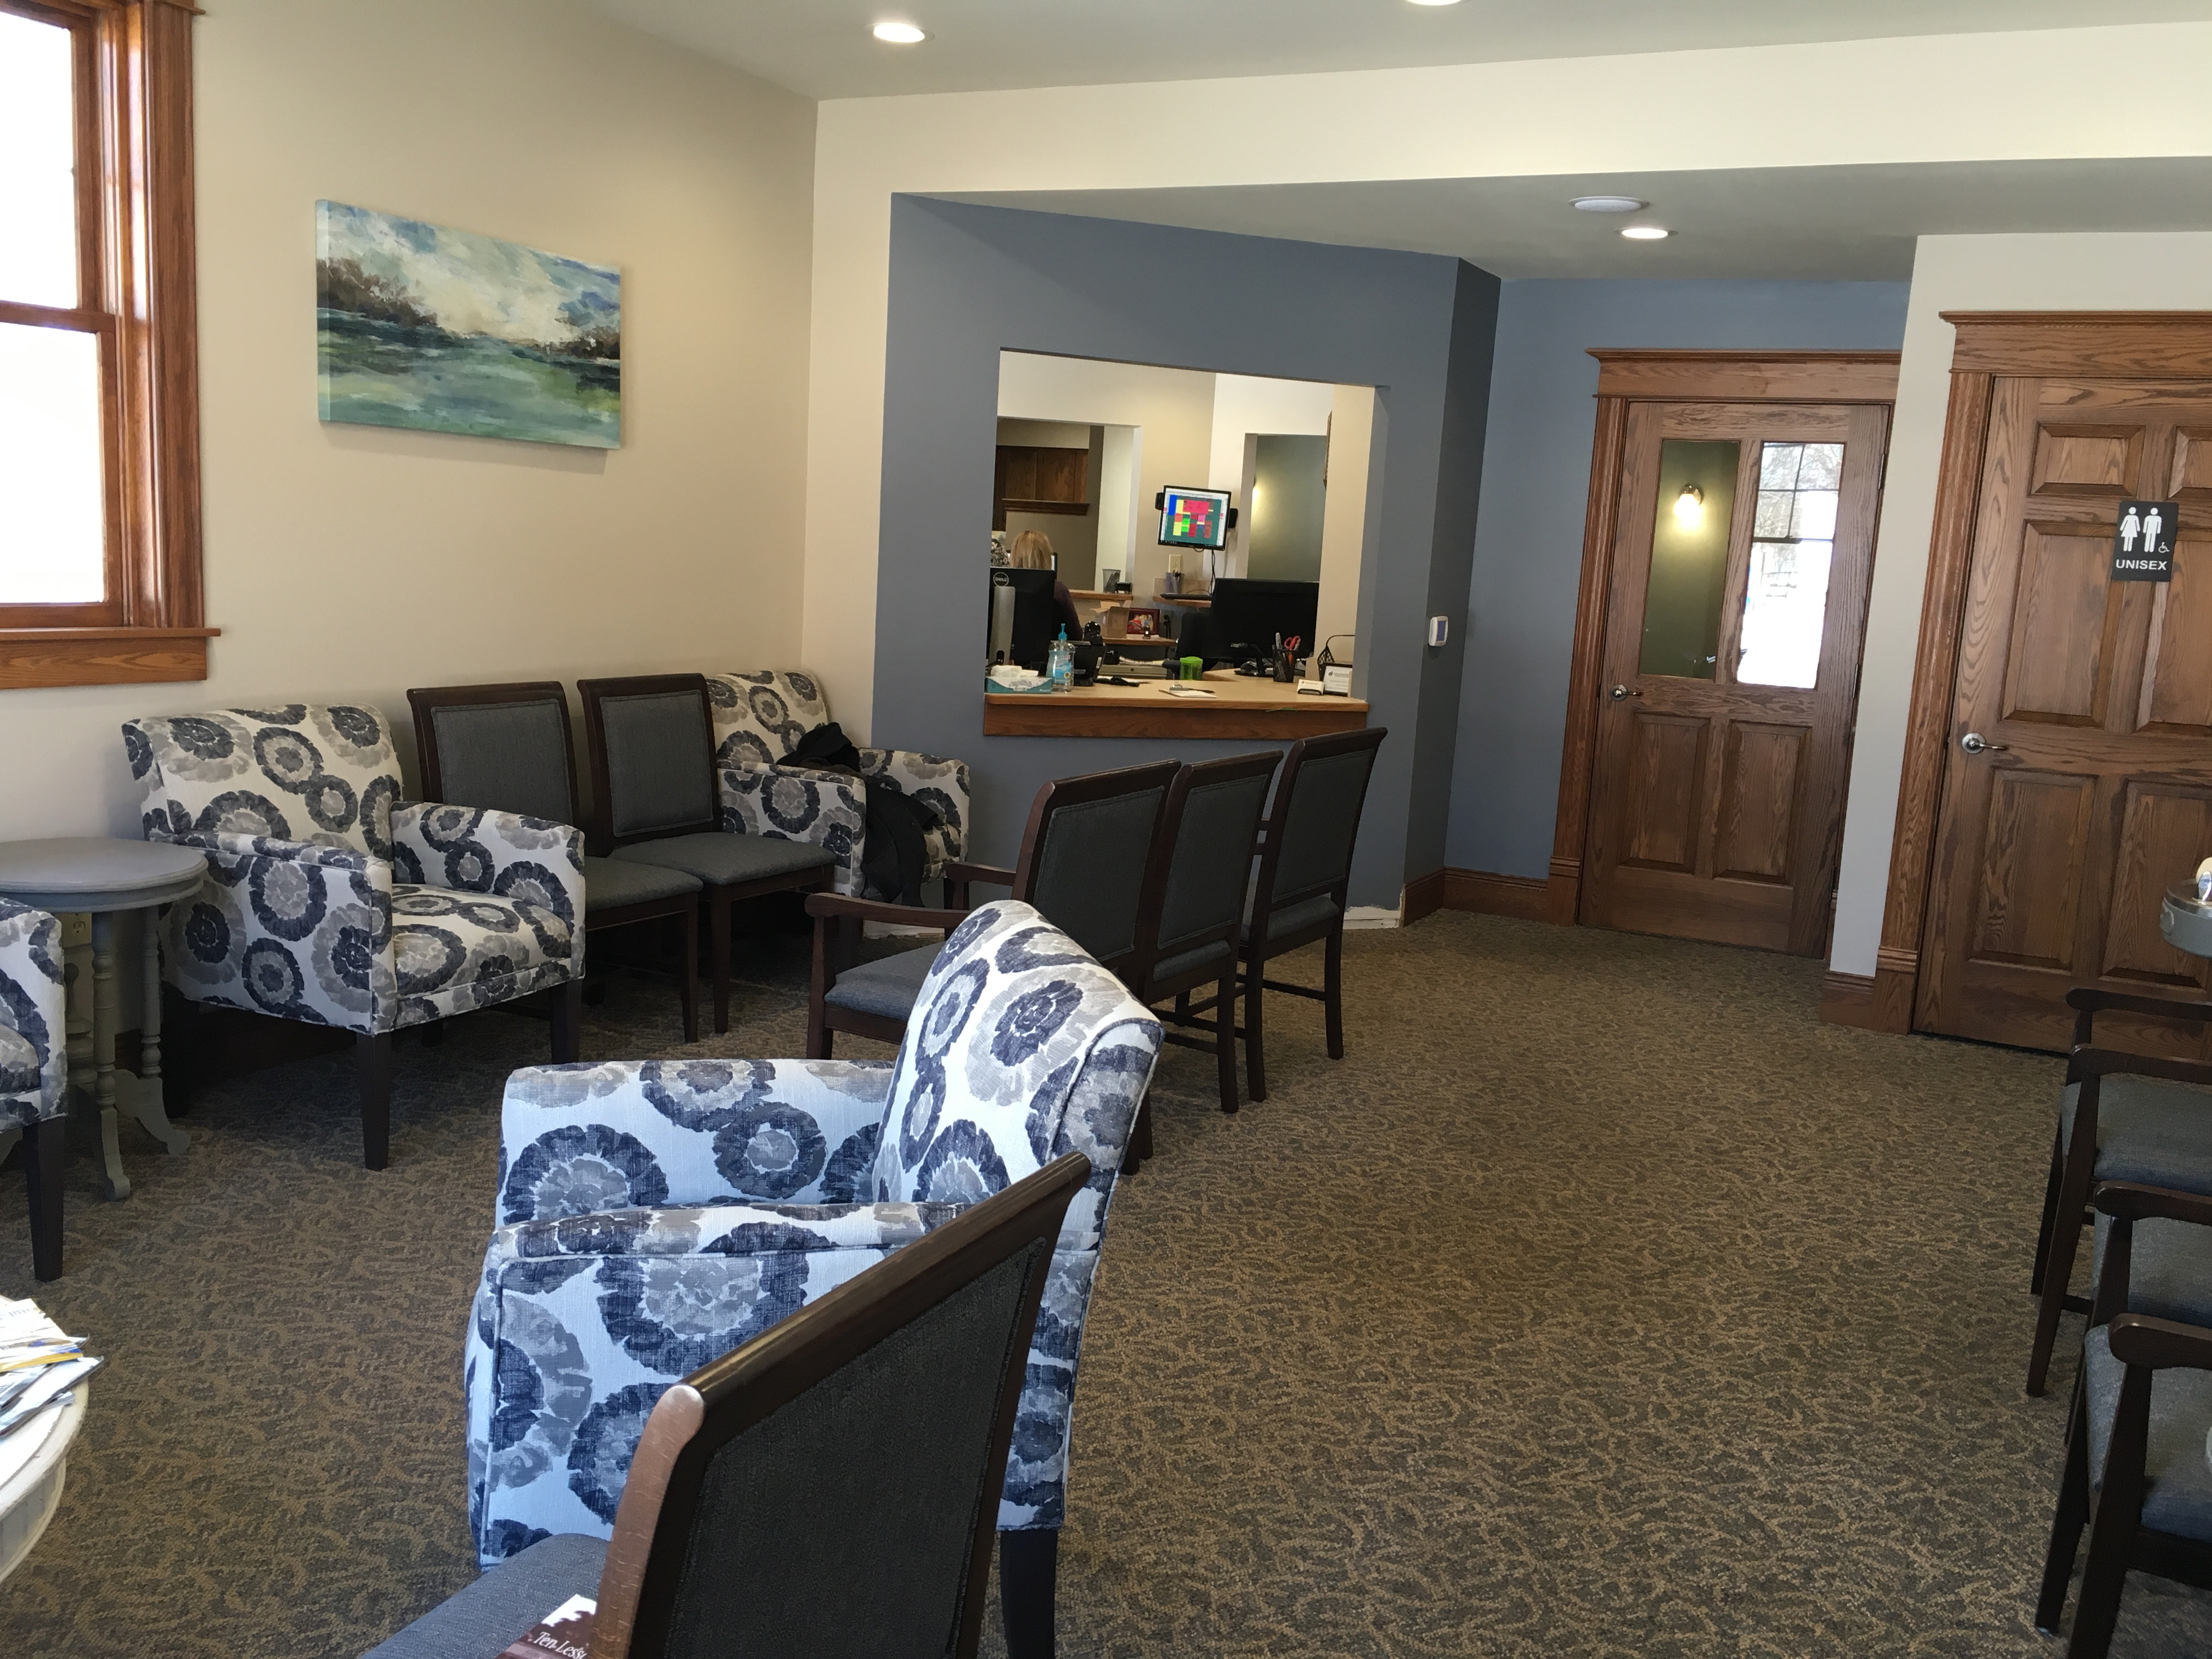 We are enjoying the extra space and updated look at our dental office. We hope you do too!